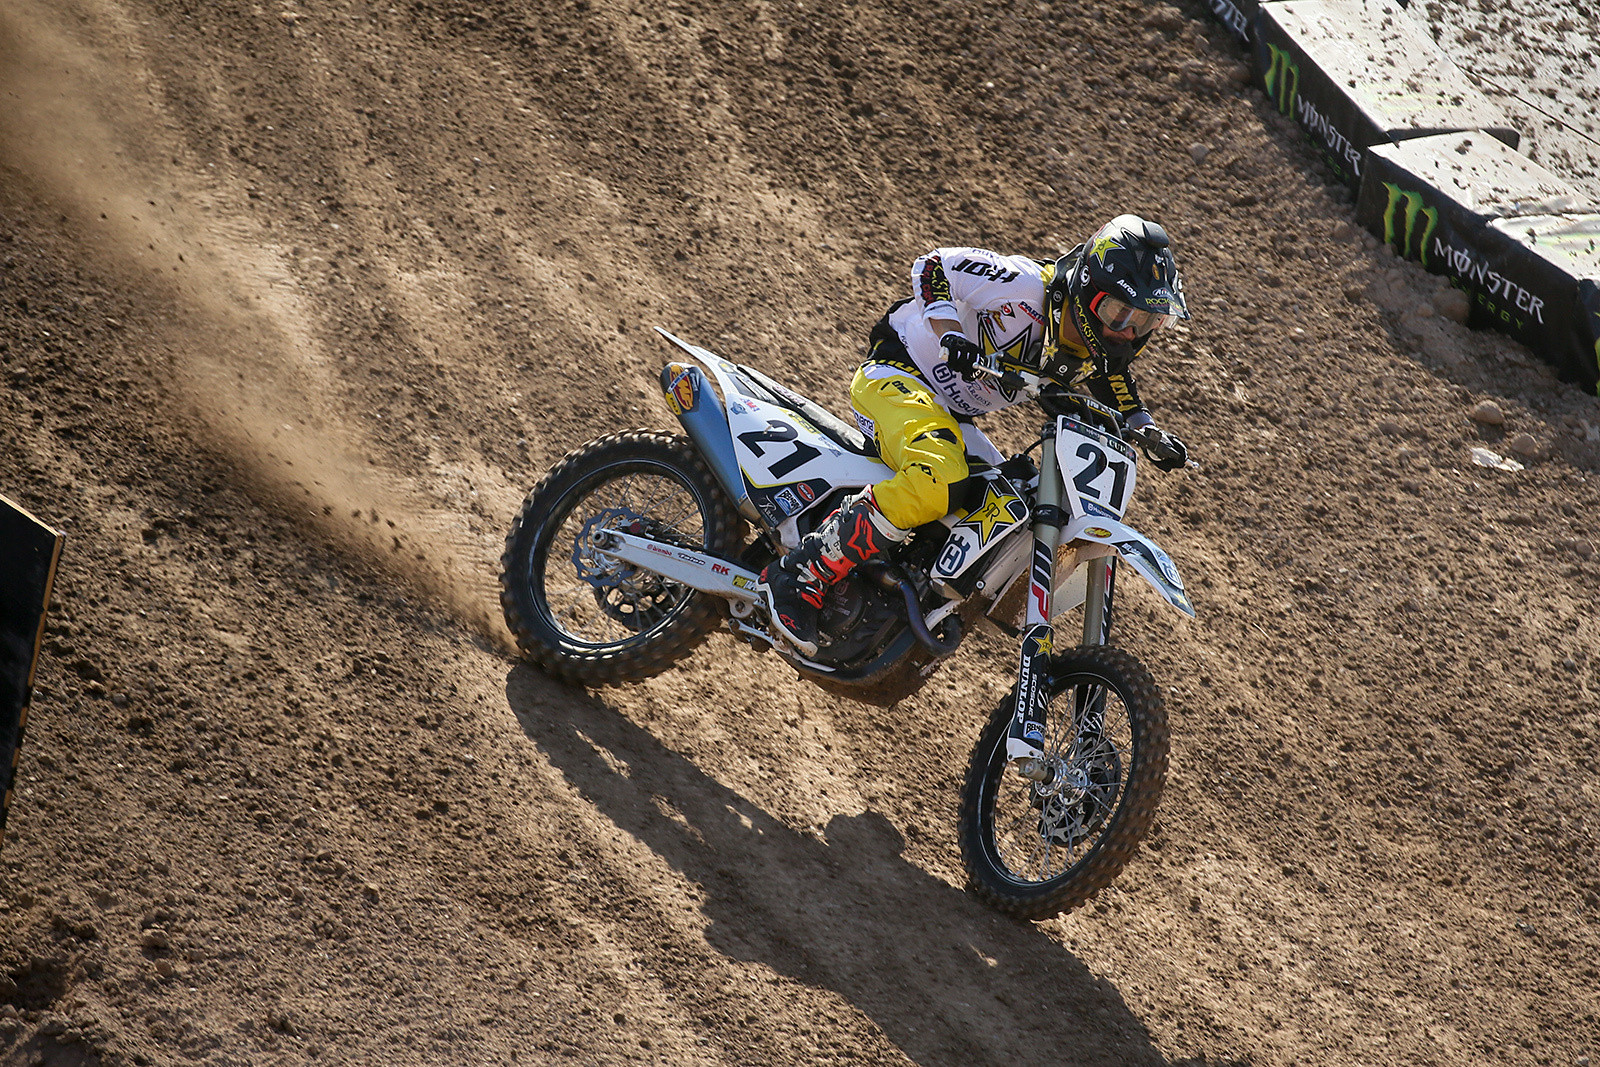 Jason Anderson was fourth-quickest here, and hard on the gas in this slippery sweeper section.